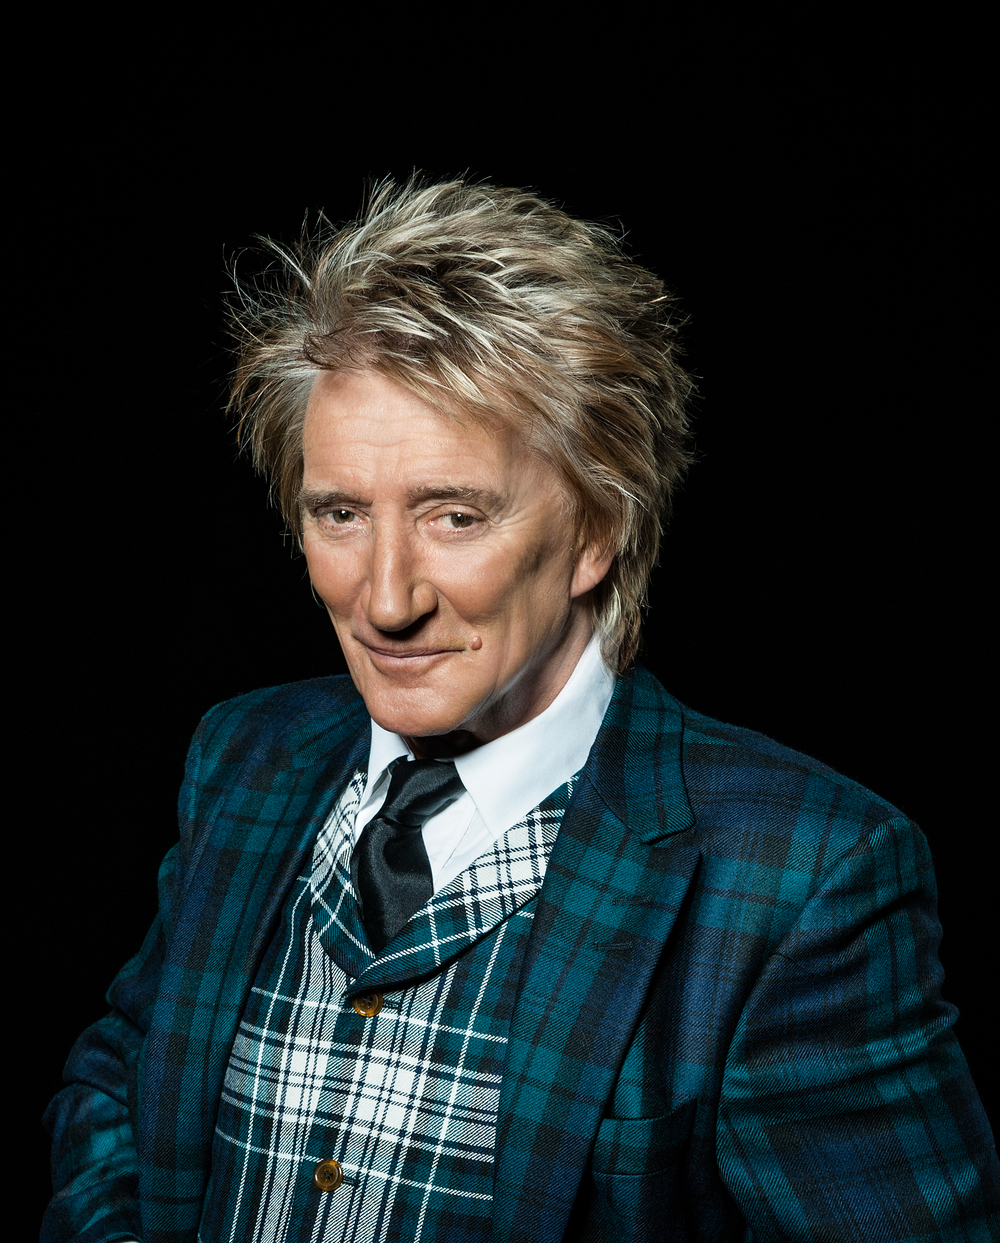 Rod Stewart inaugurates the Founder's Room at The Paramount's Legends Series with a private show Aug. 30.